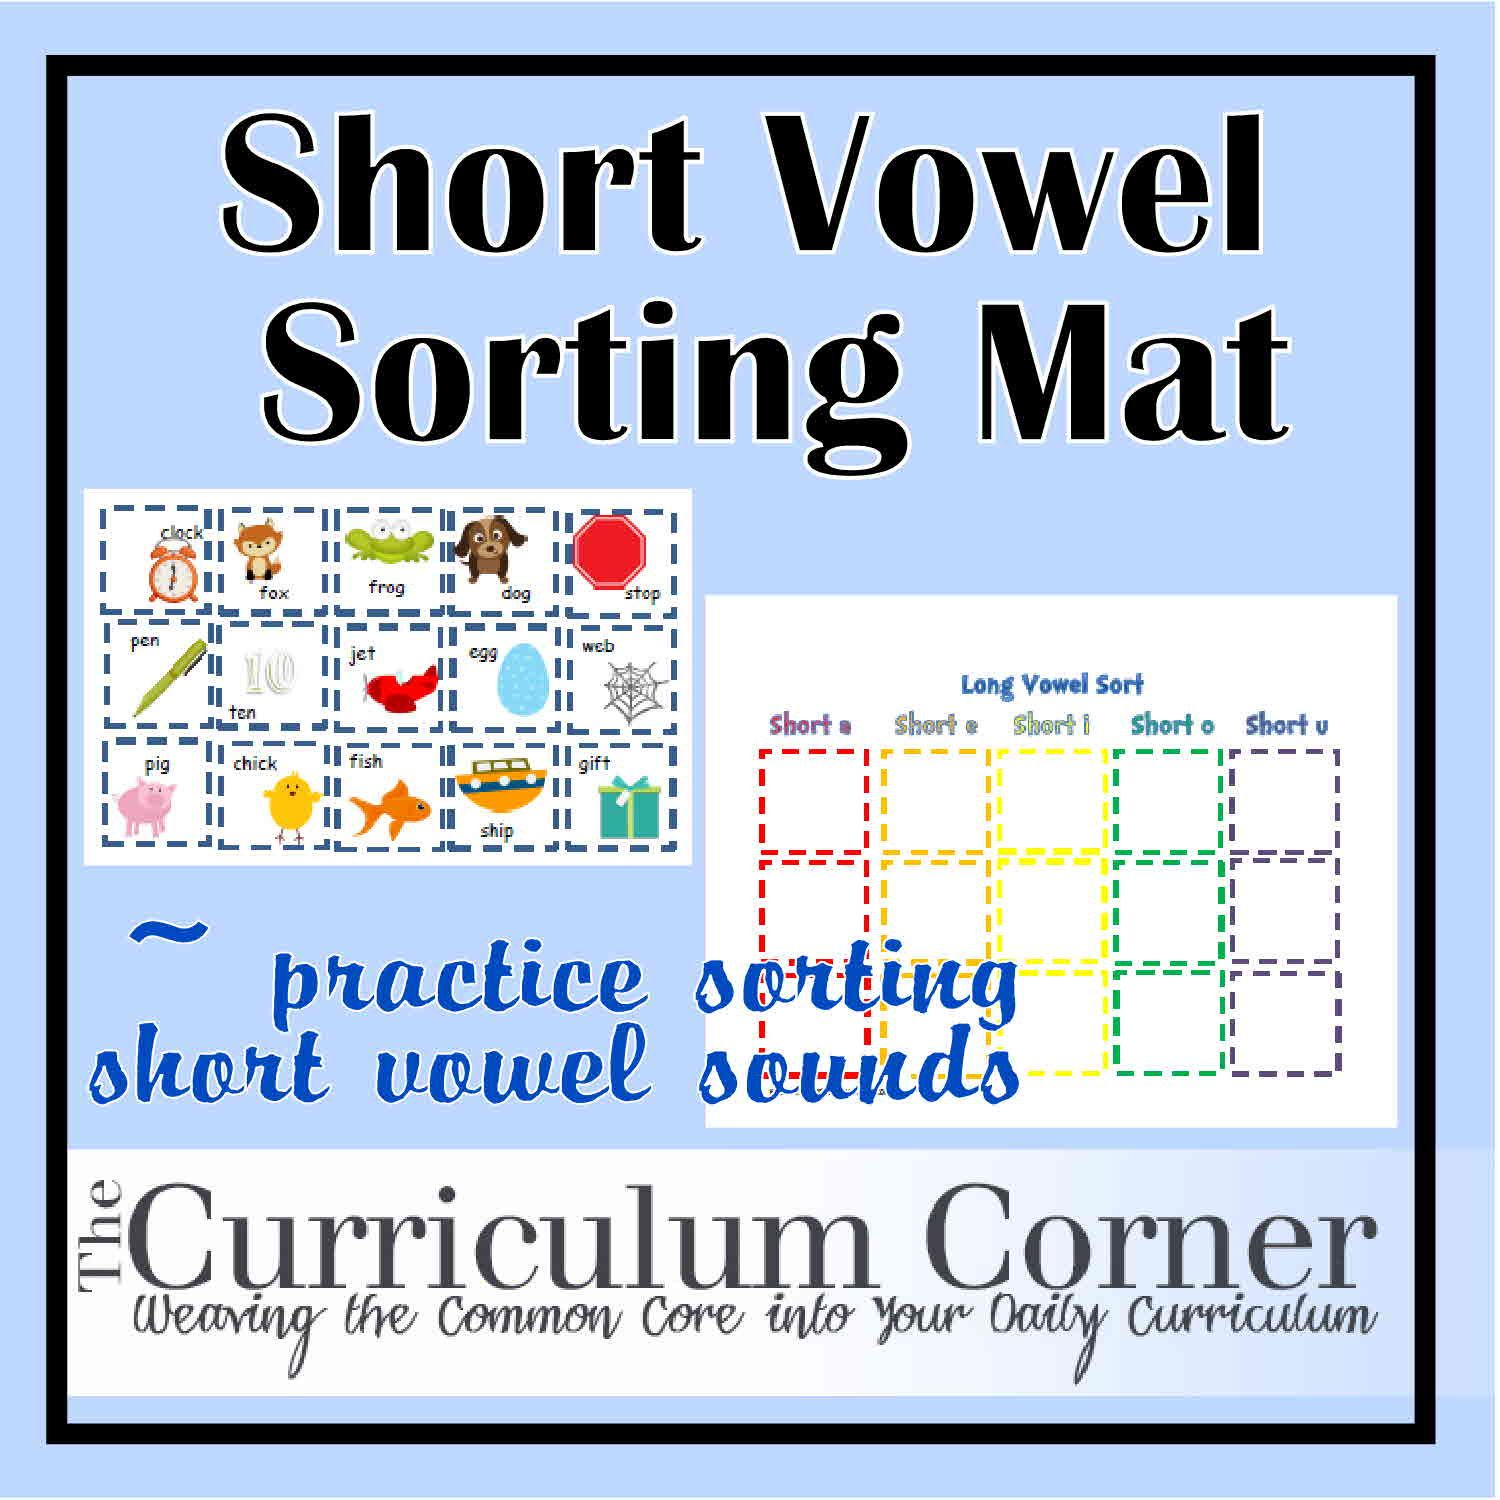 Short Vowel Sorting Mat